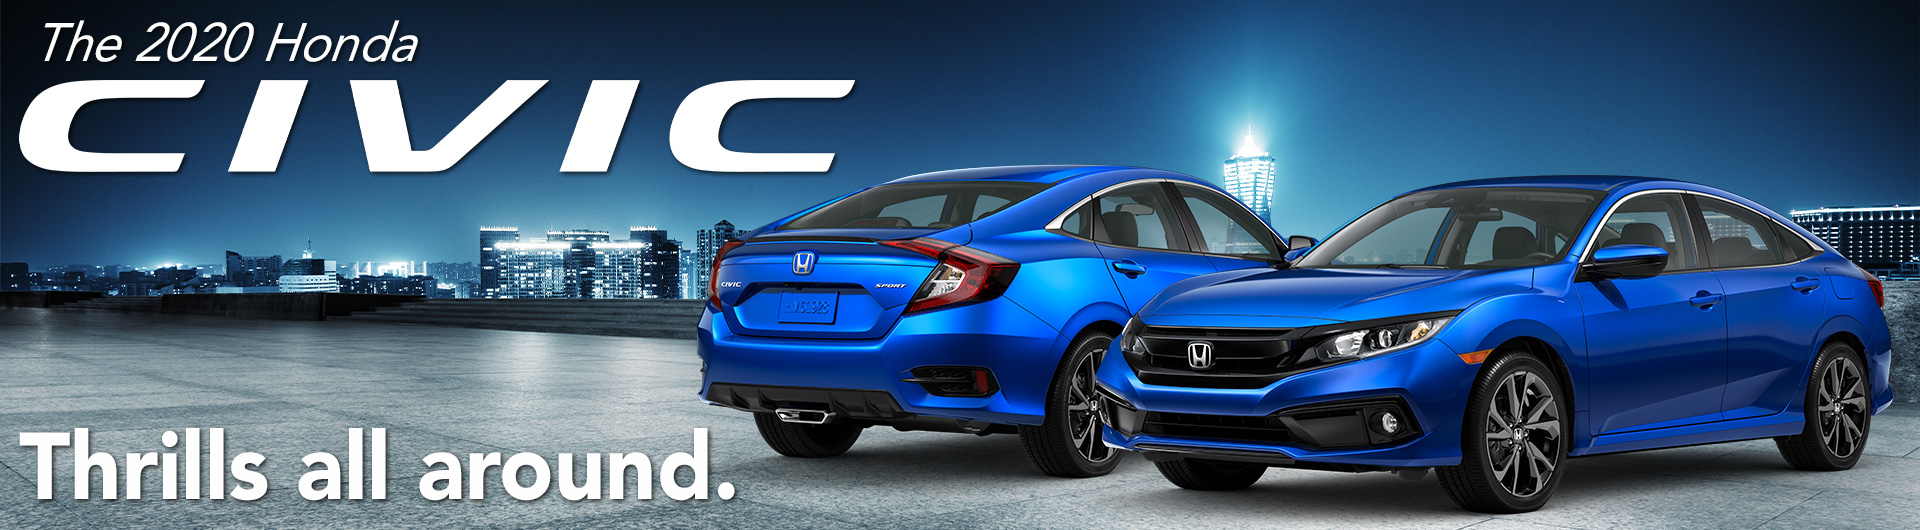 A New 2020 Honda Civic at Keeler Honda in Latham, New York